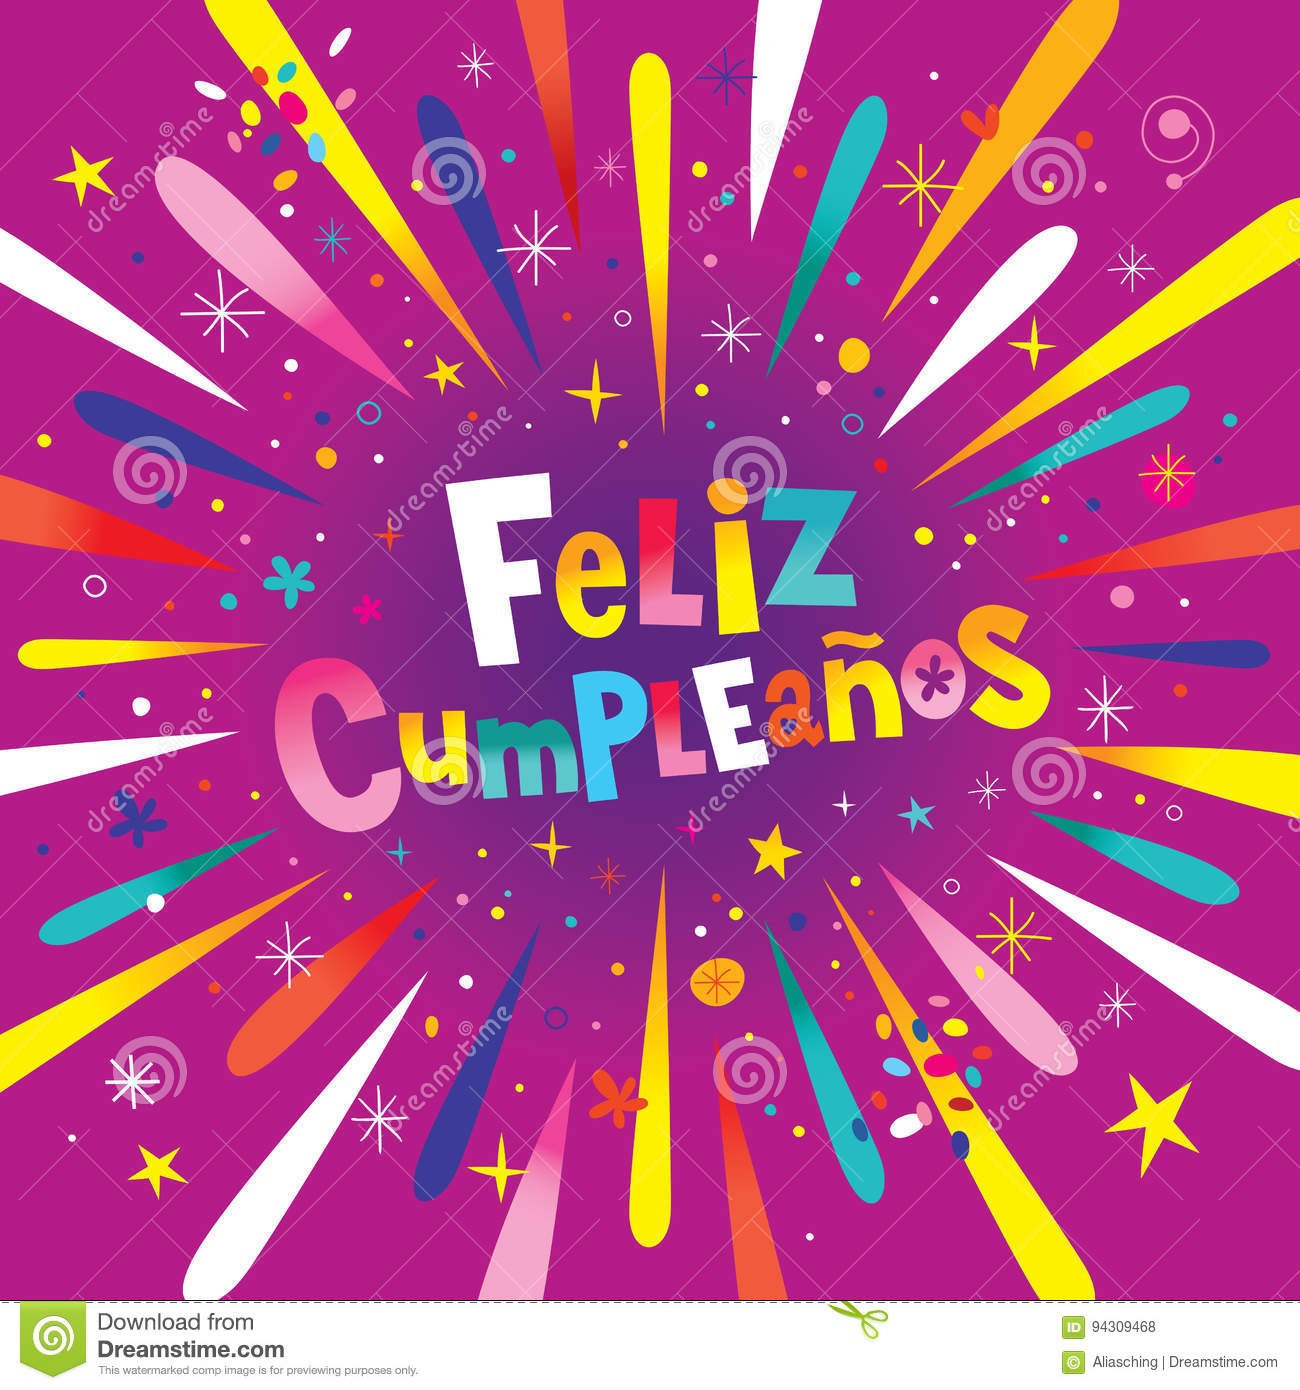 Cumpleanos Cartoons Illustrations Amp Vector Stock Images